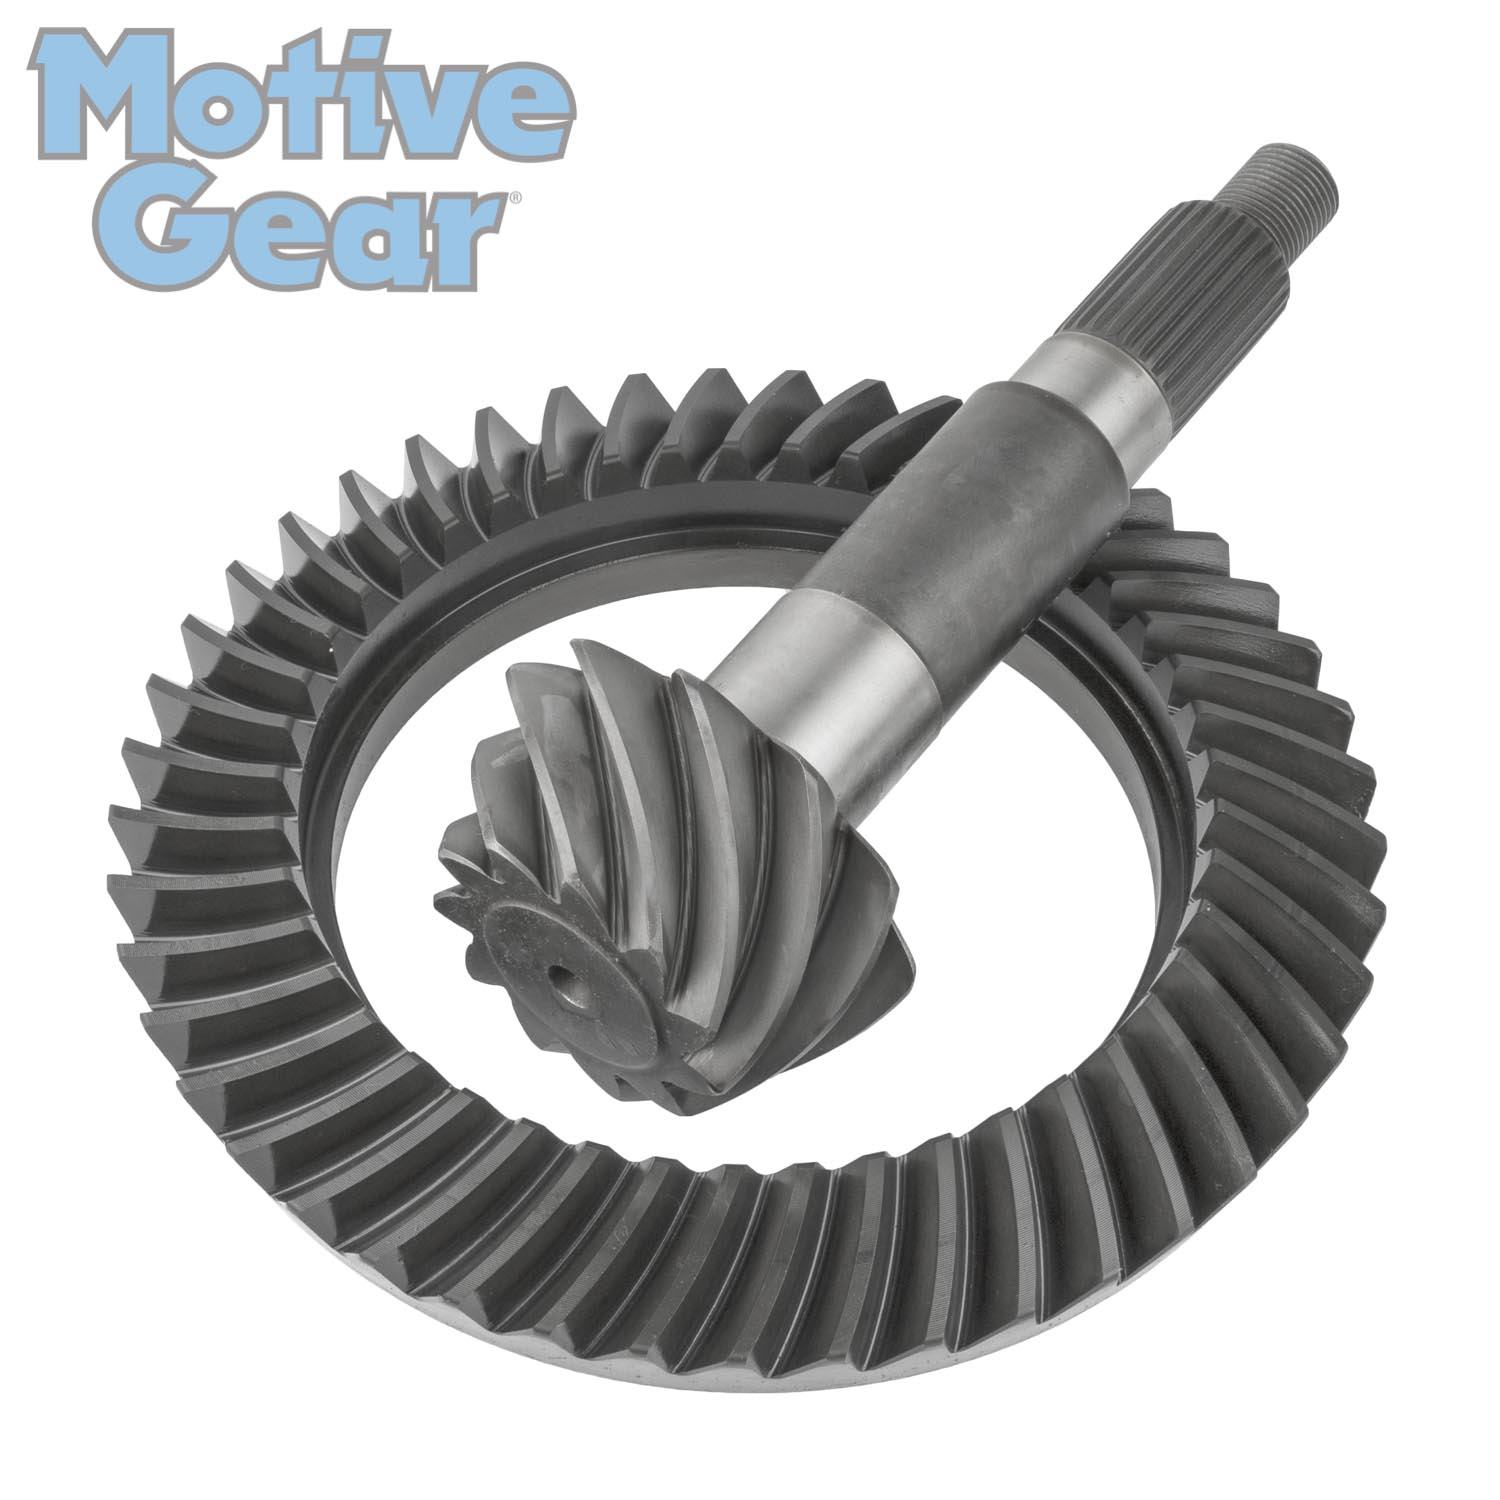 Dana 44 Motive Gear Ring and Pinion Gear Set